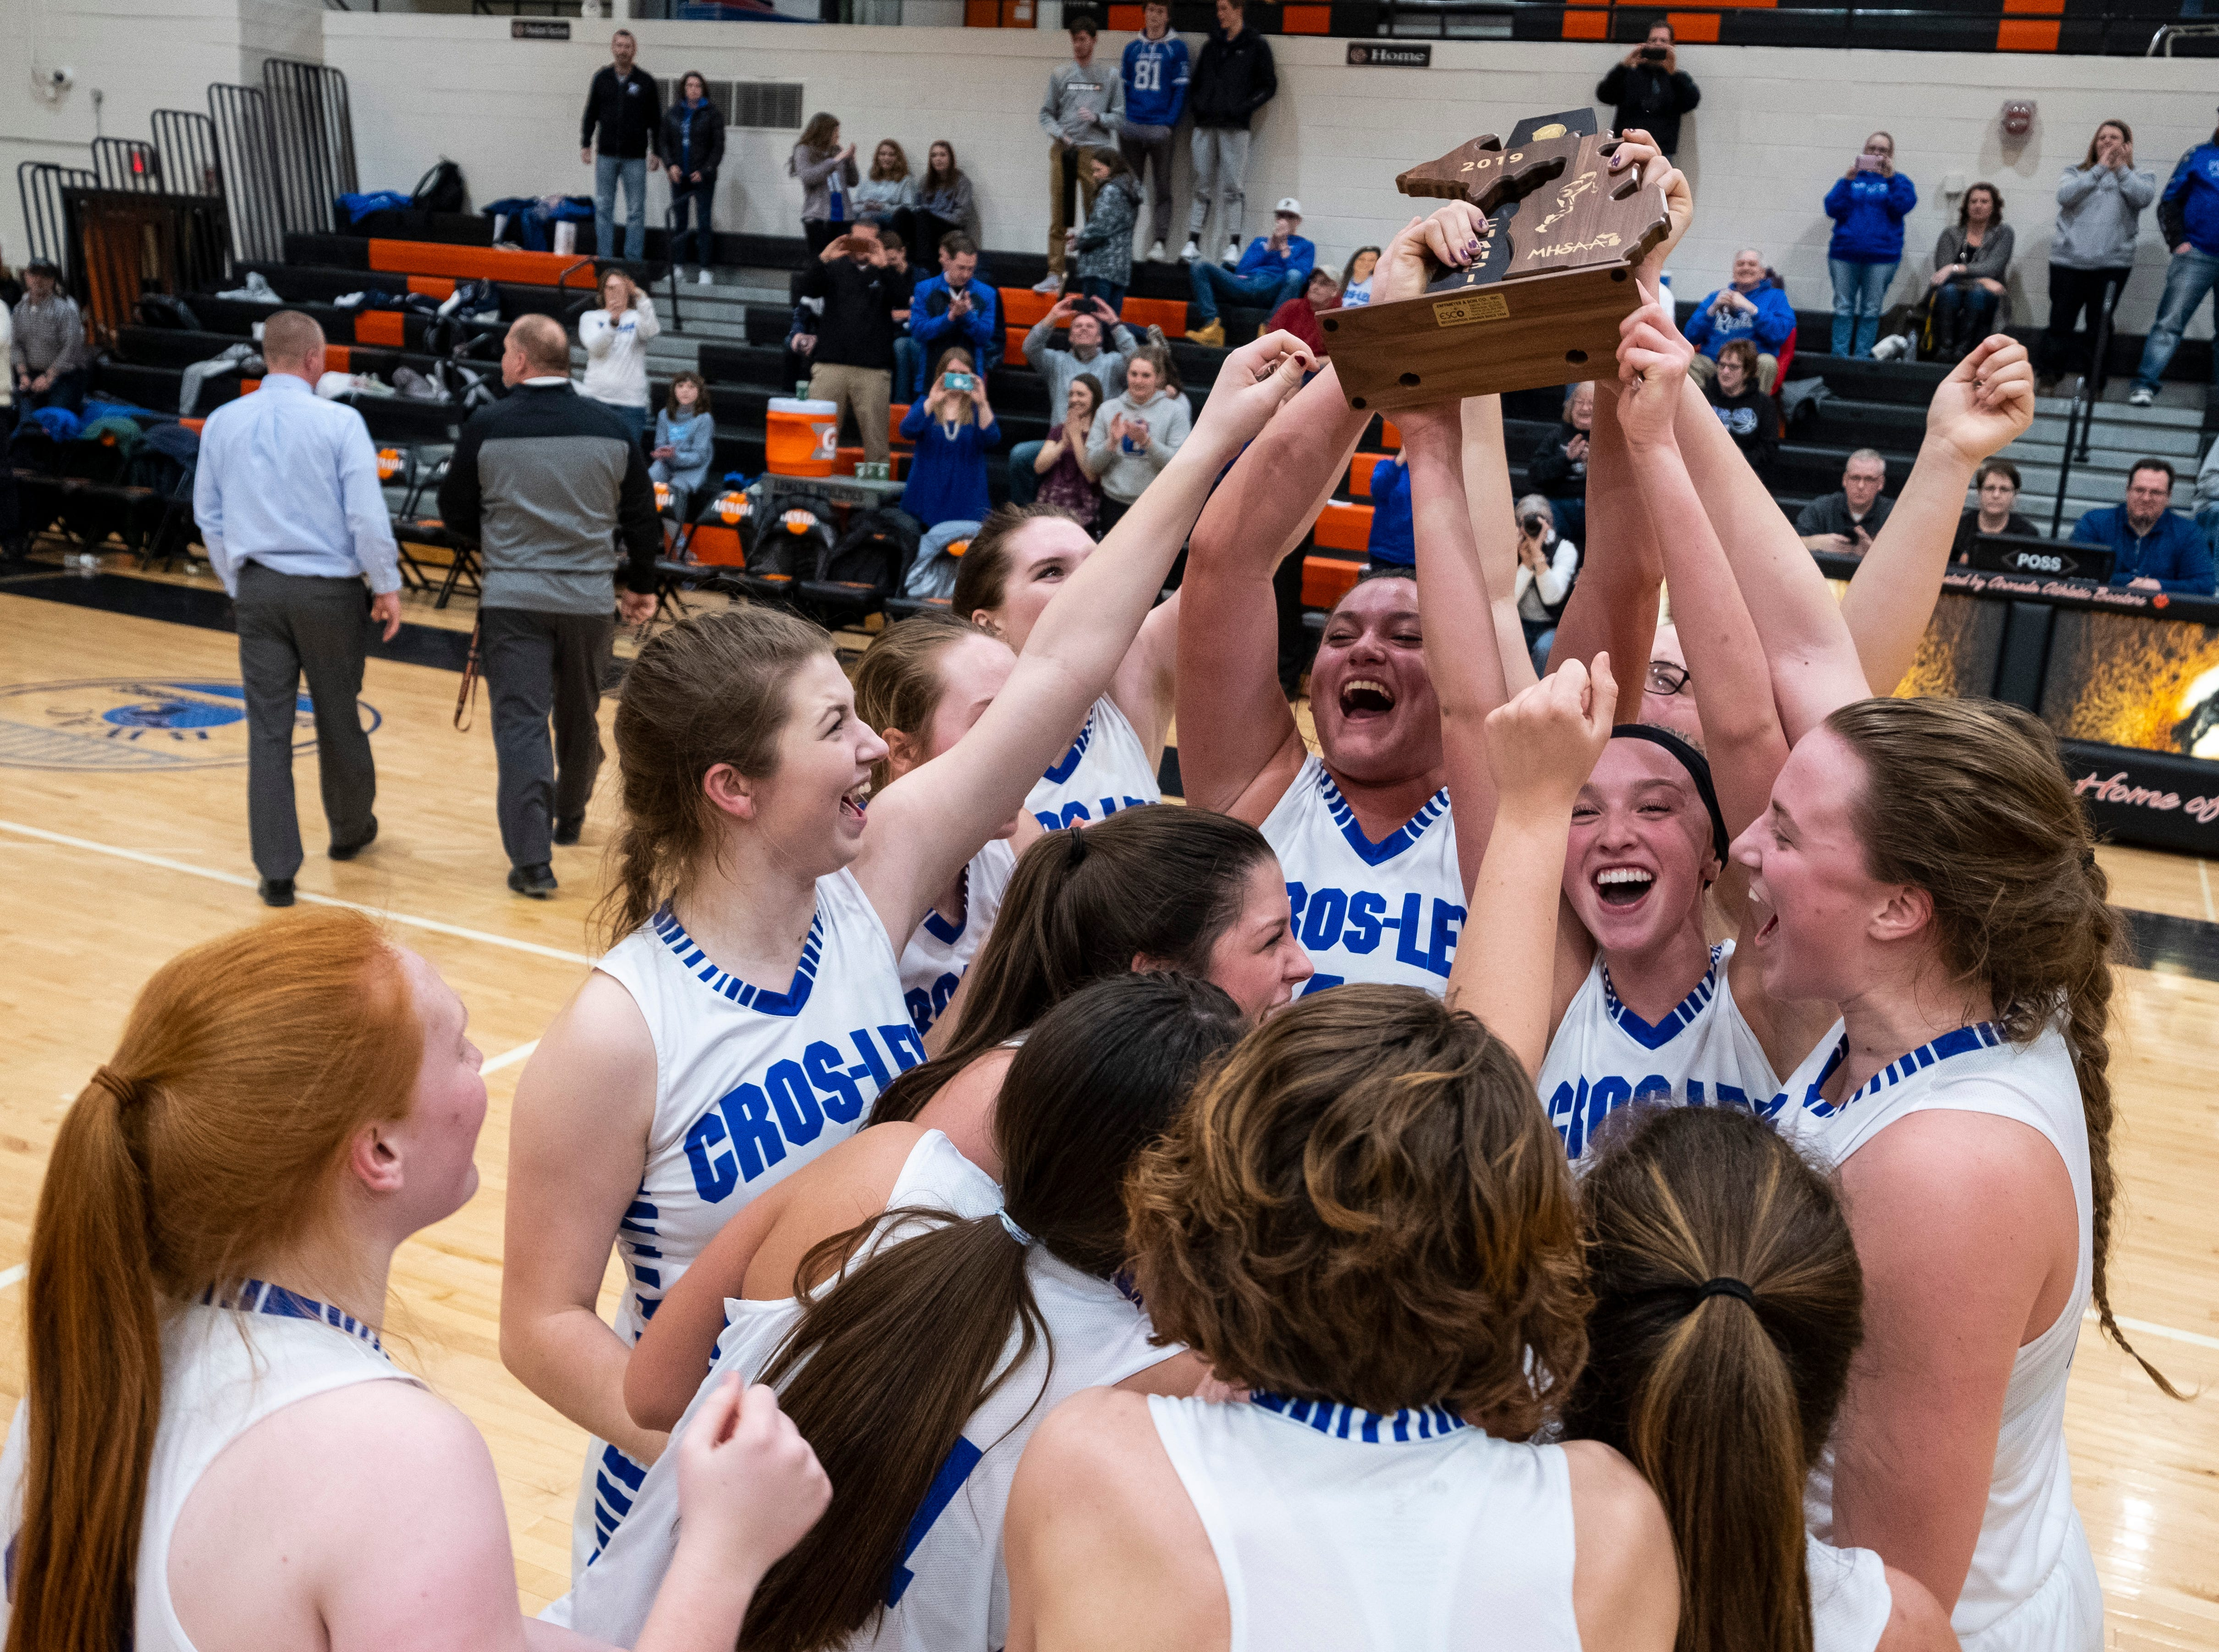 The Croswell-Lexington High School girls basketball team celebrate their victory over Marysville High School in the MHSAA Division 2 girls basketball district finals Friday, March 8, 2019 at Armada High School.